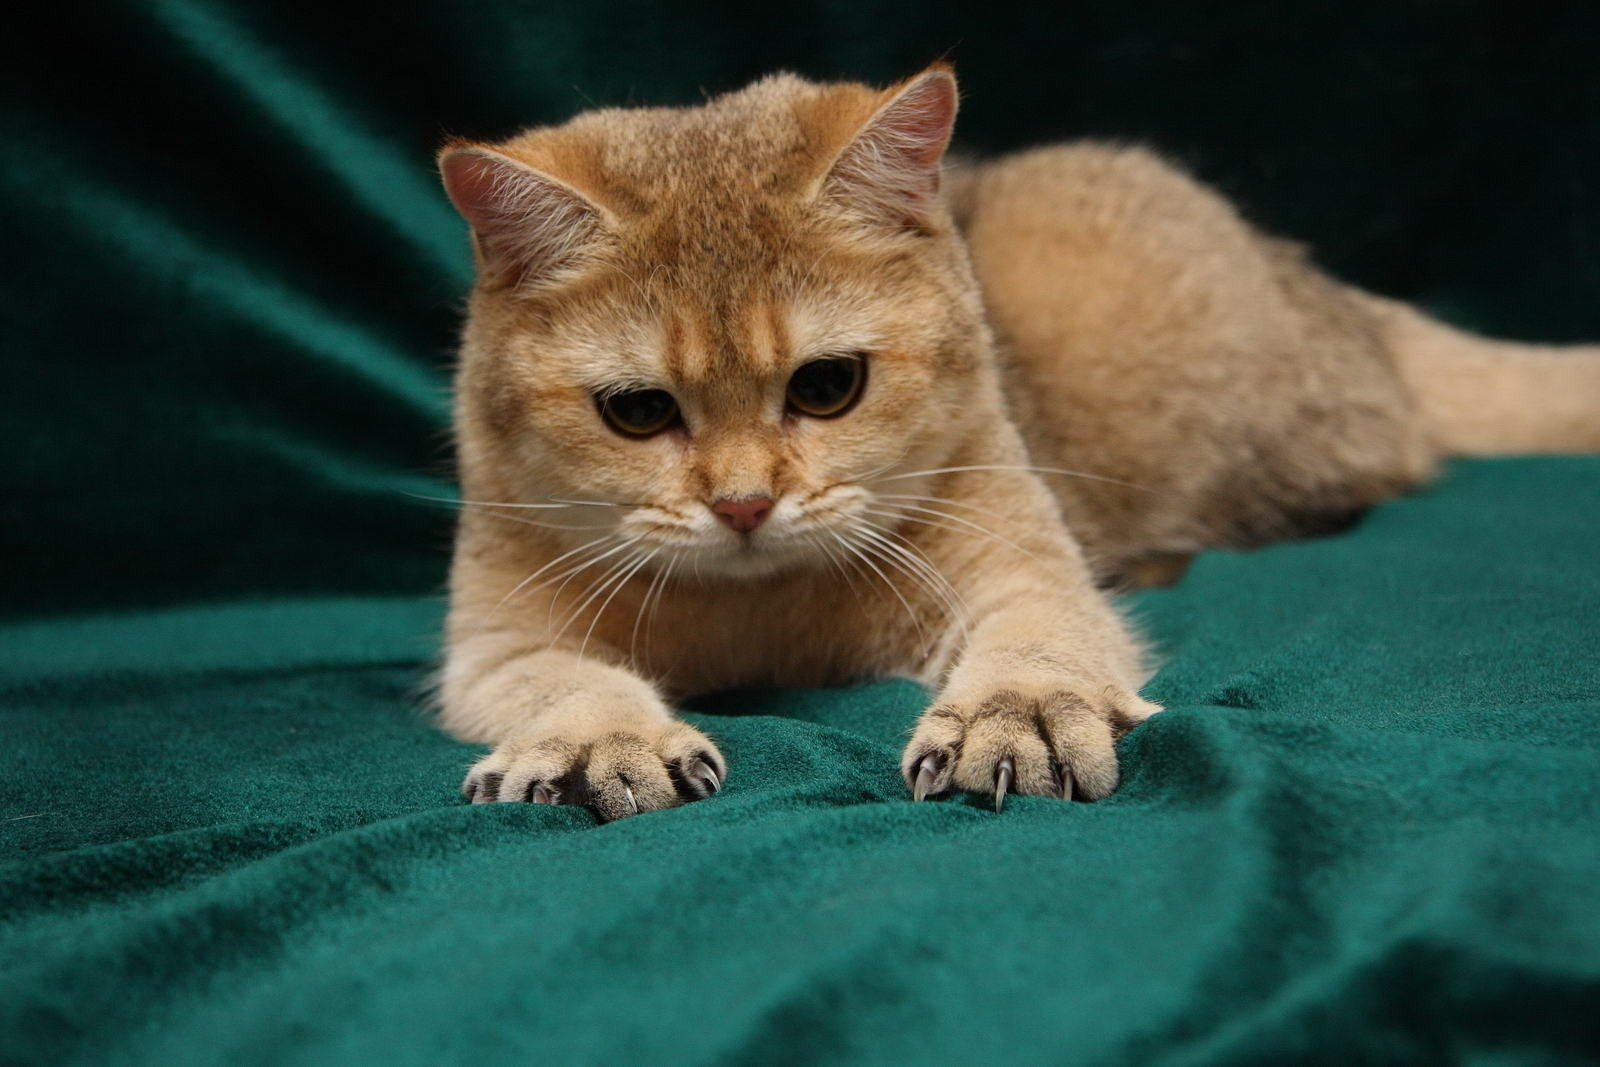 111467 download wallpaper Animals, Cat, Redhead, Claws, Paws, Nice, Sweetheart screensavers and pictures for free